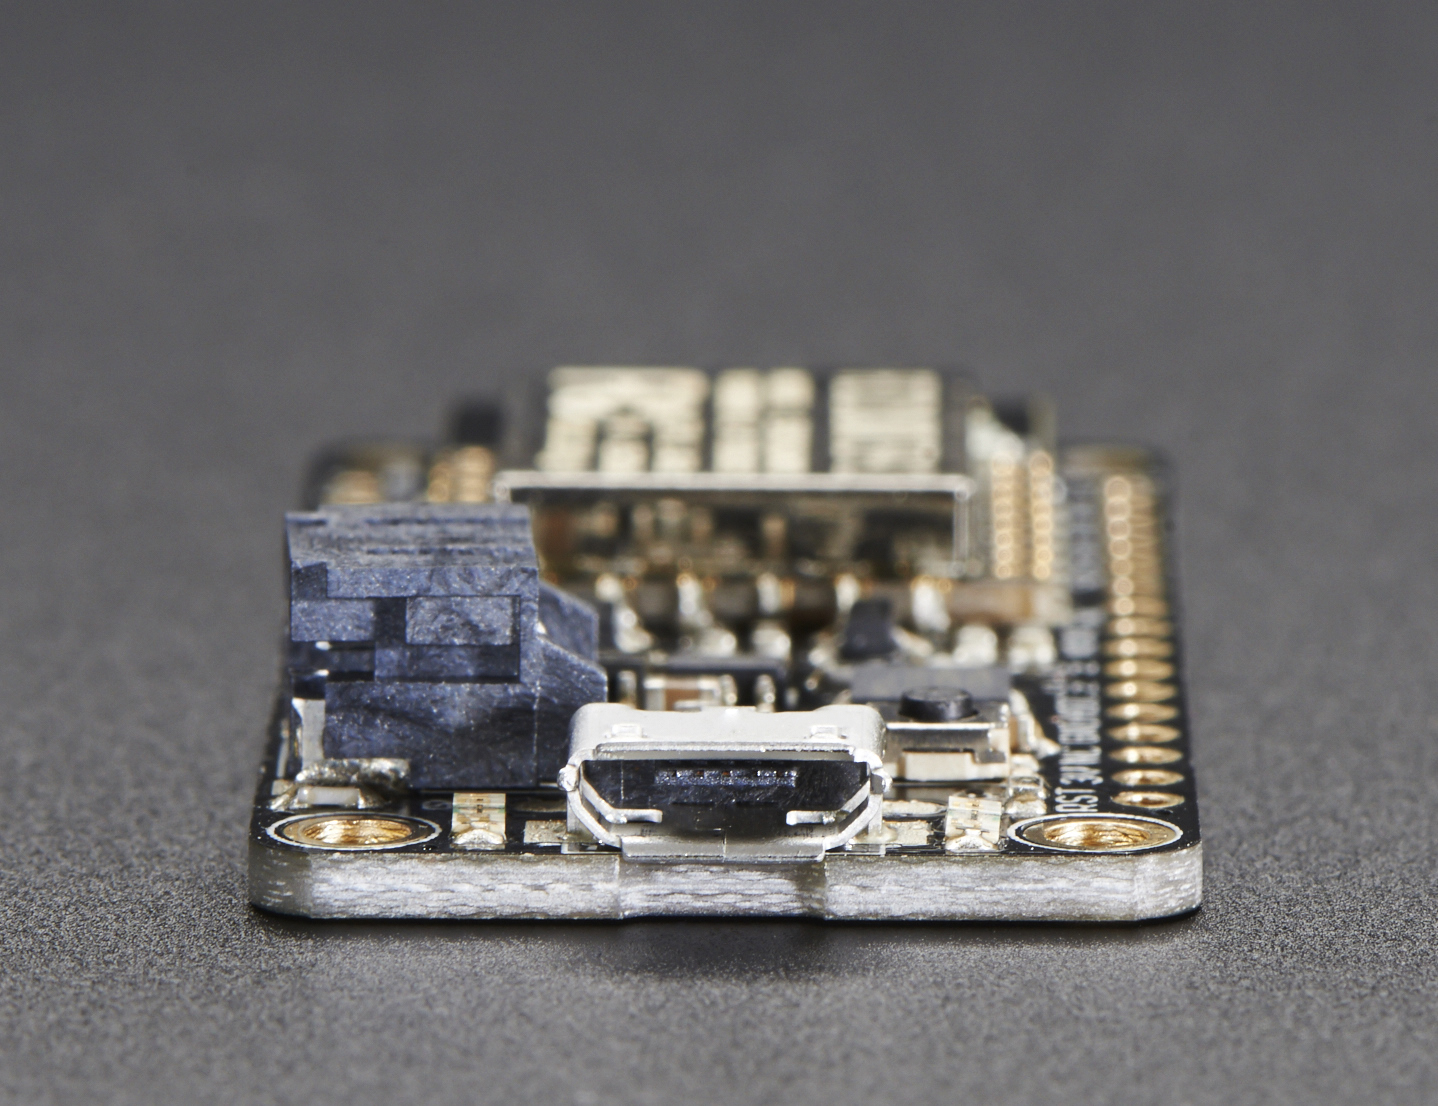 adafruit_products_2821_side_01_ORIG.jpg